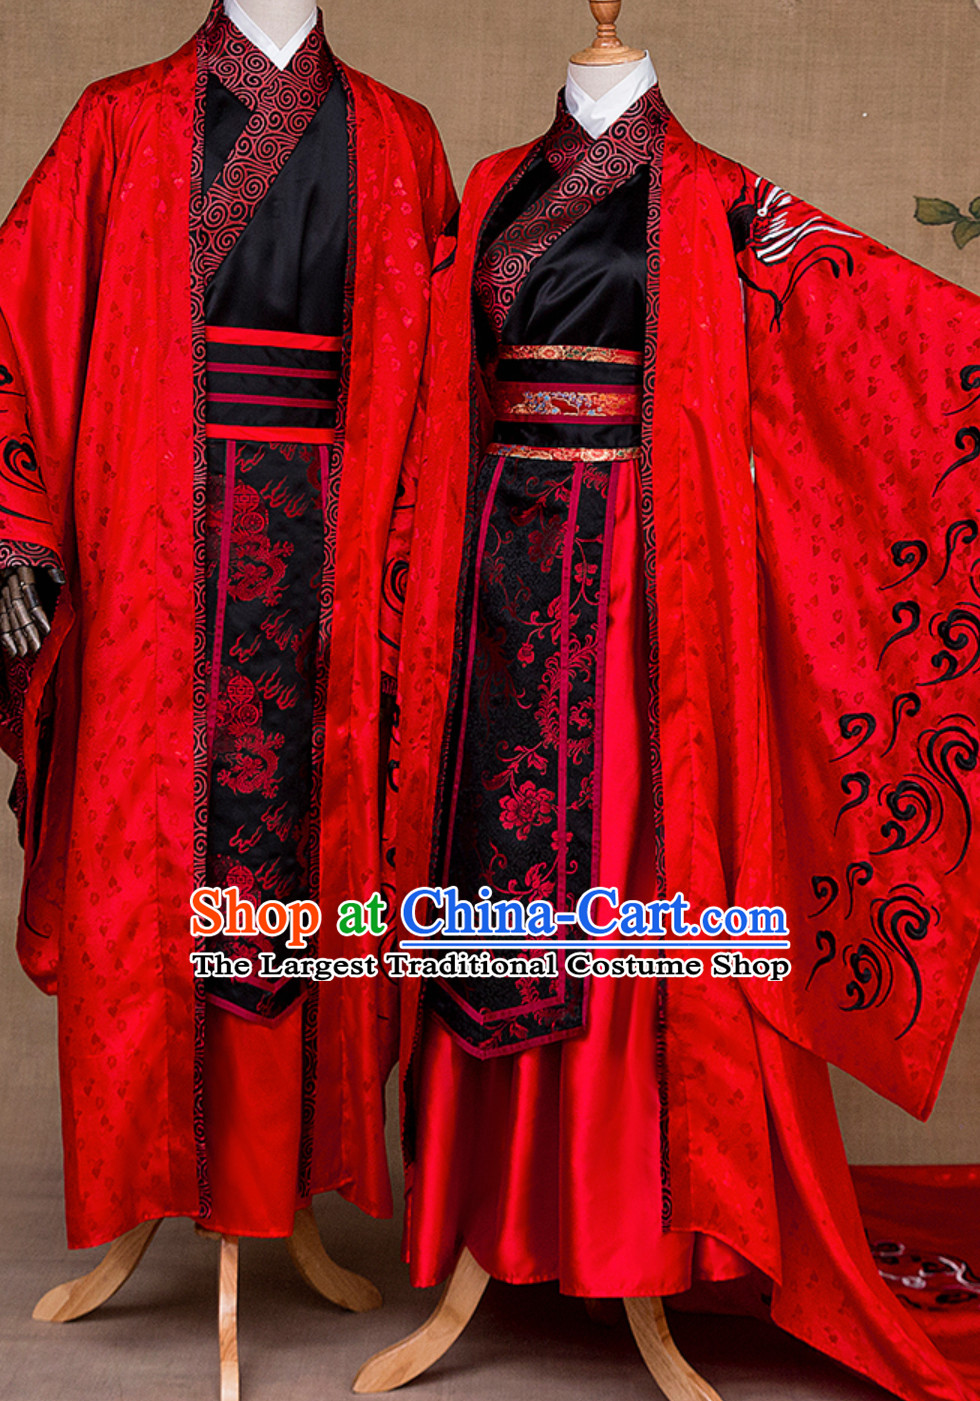 Ancient Chinese Emperor and Empress Royal Imperial Wedding Dresses 2 Complete Sets